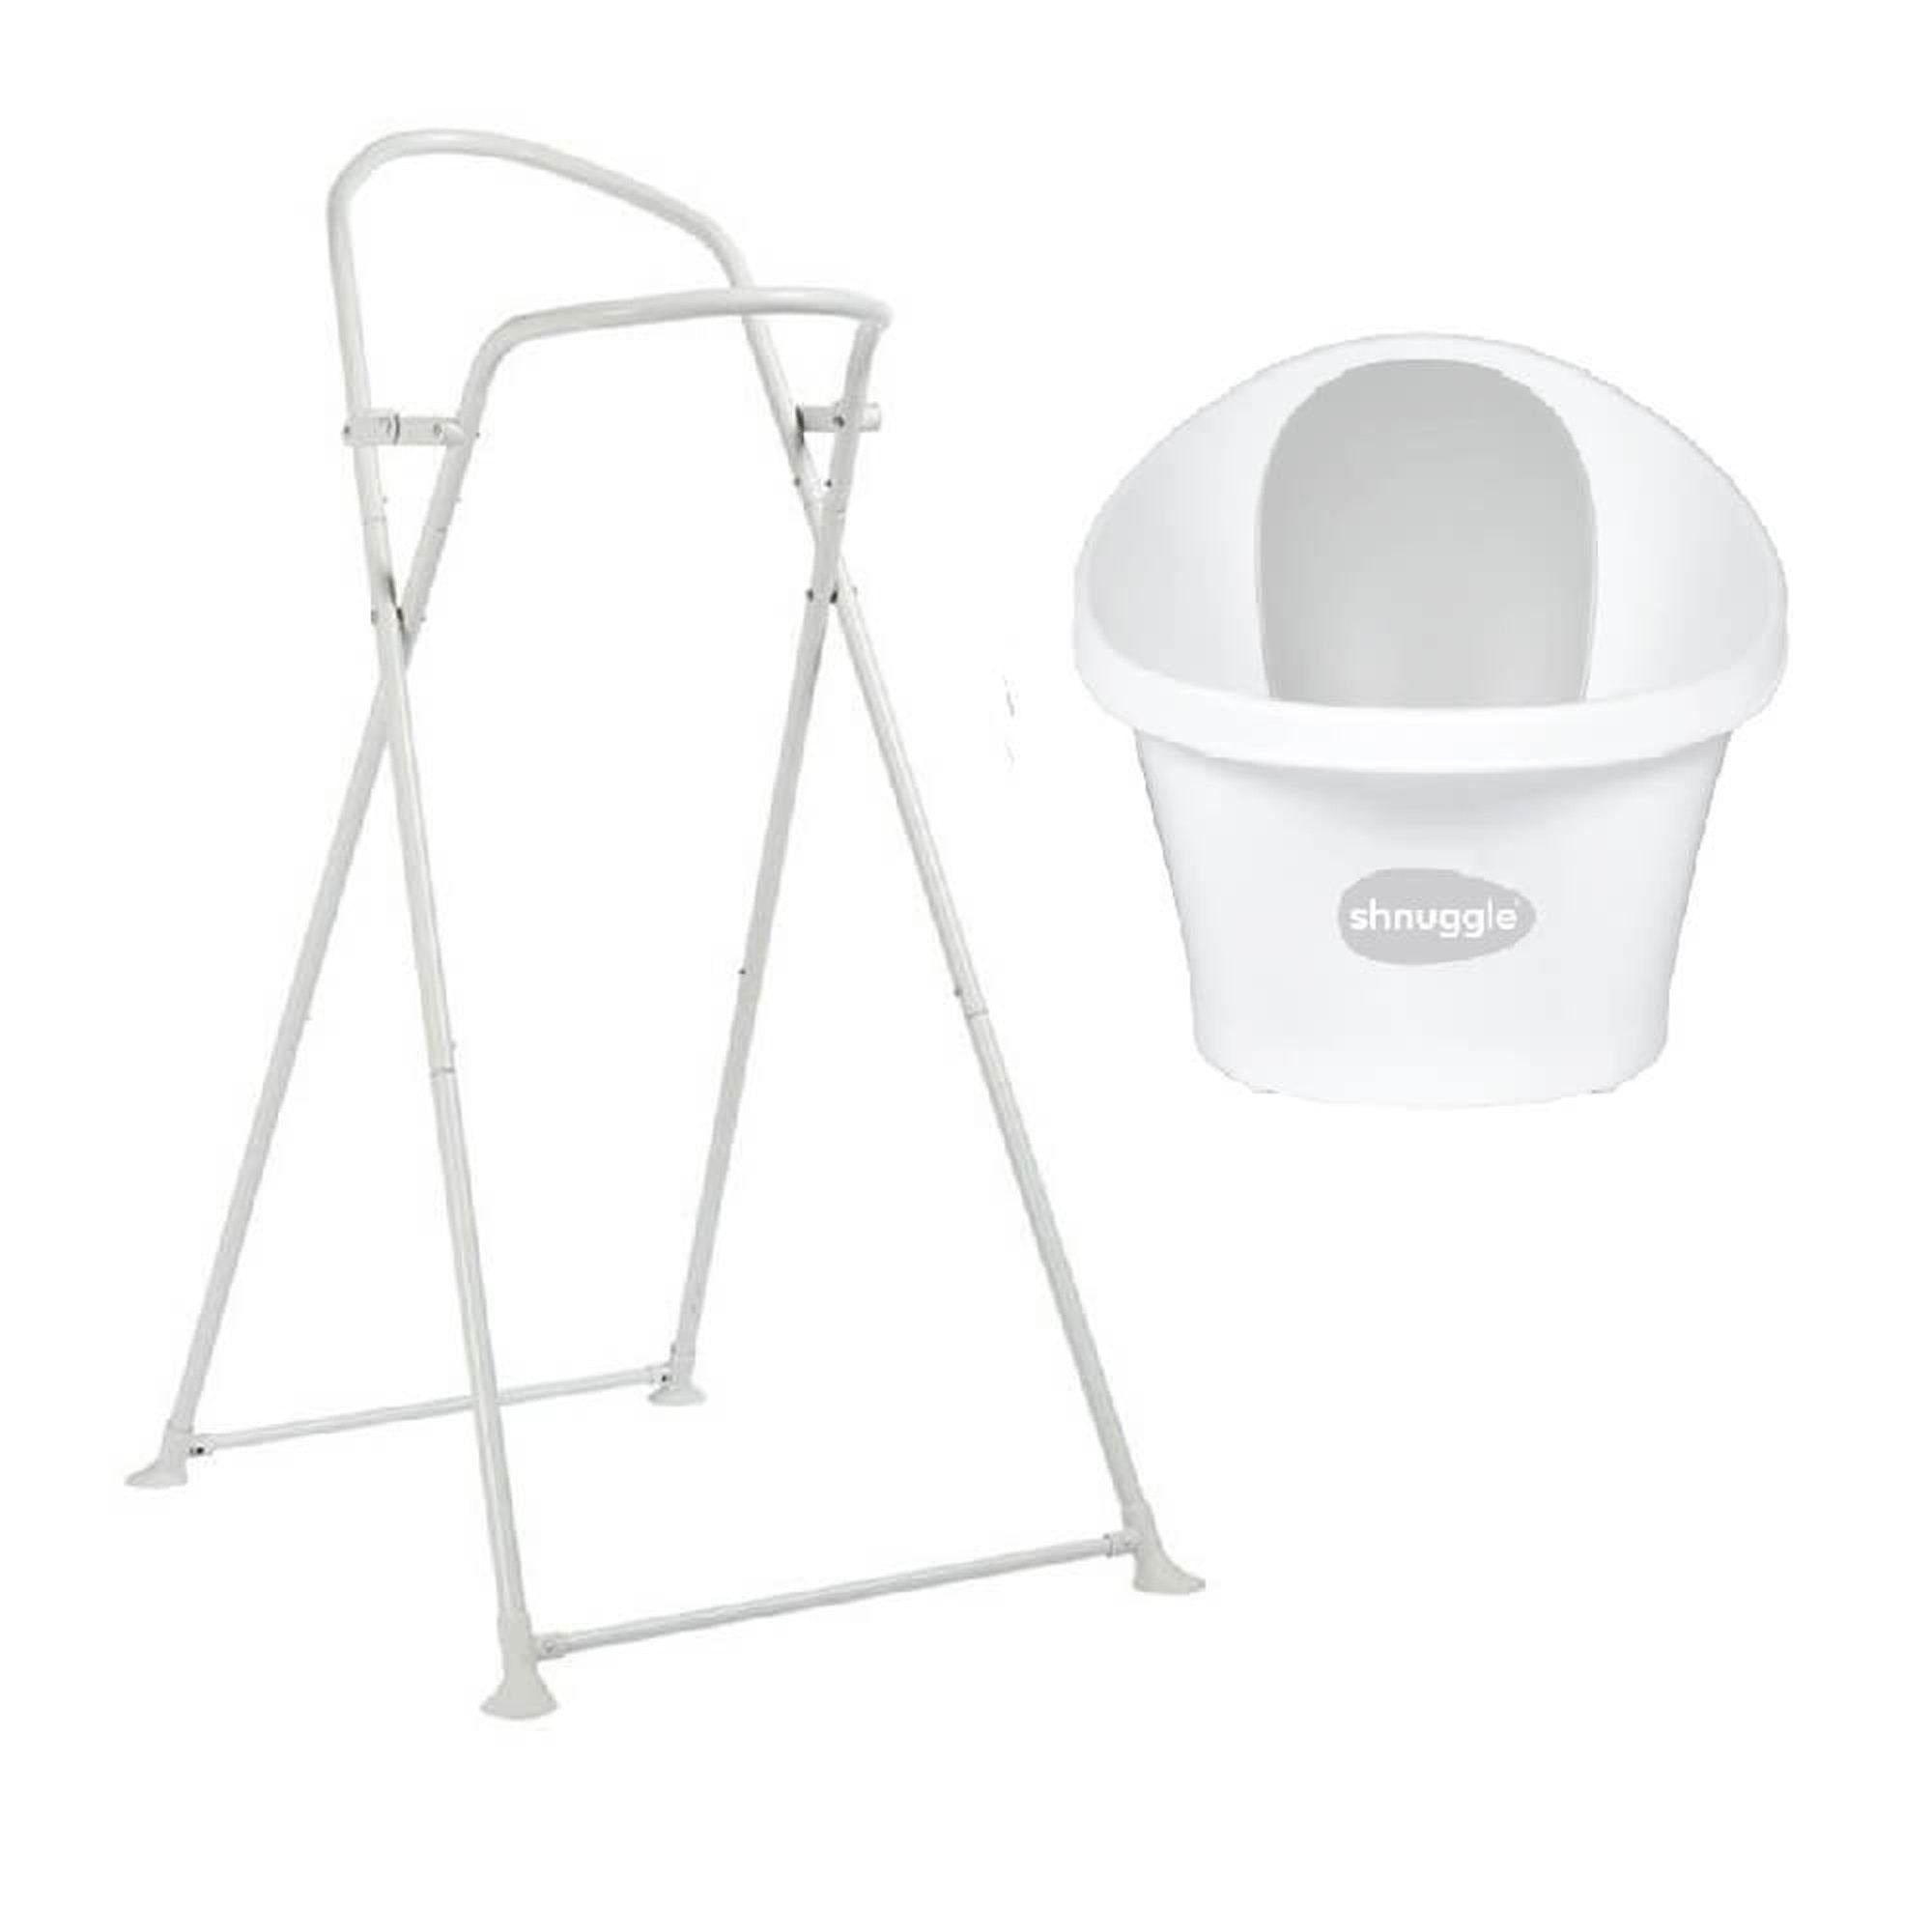 Shop Baby Bath Stands Online At Kiddie Country